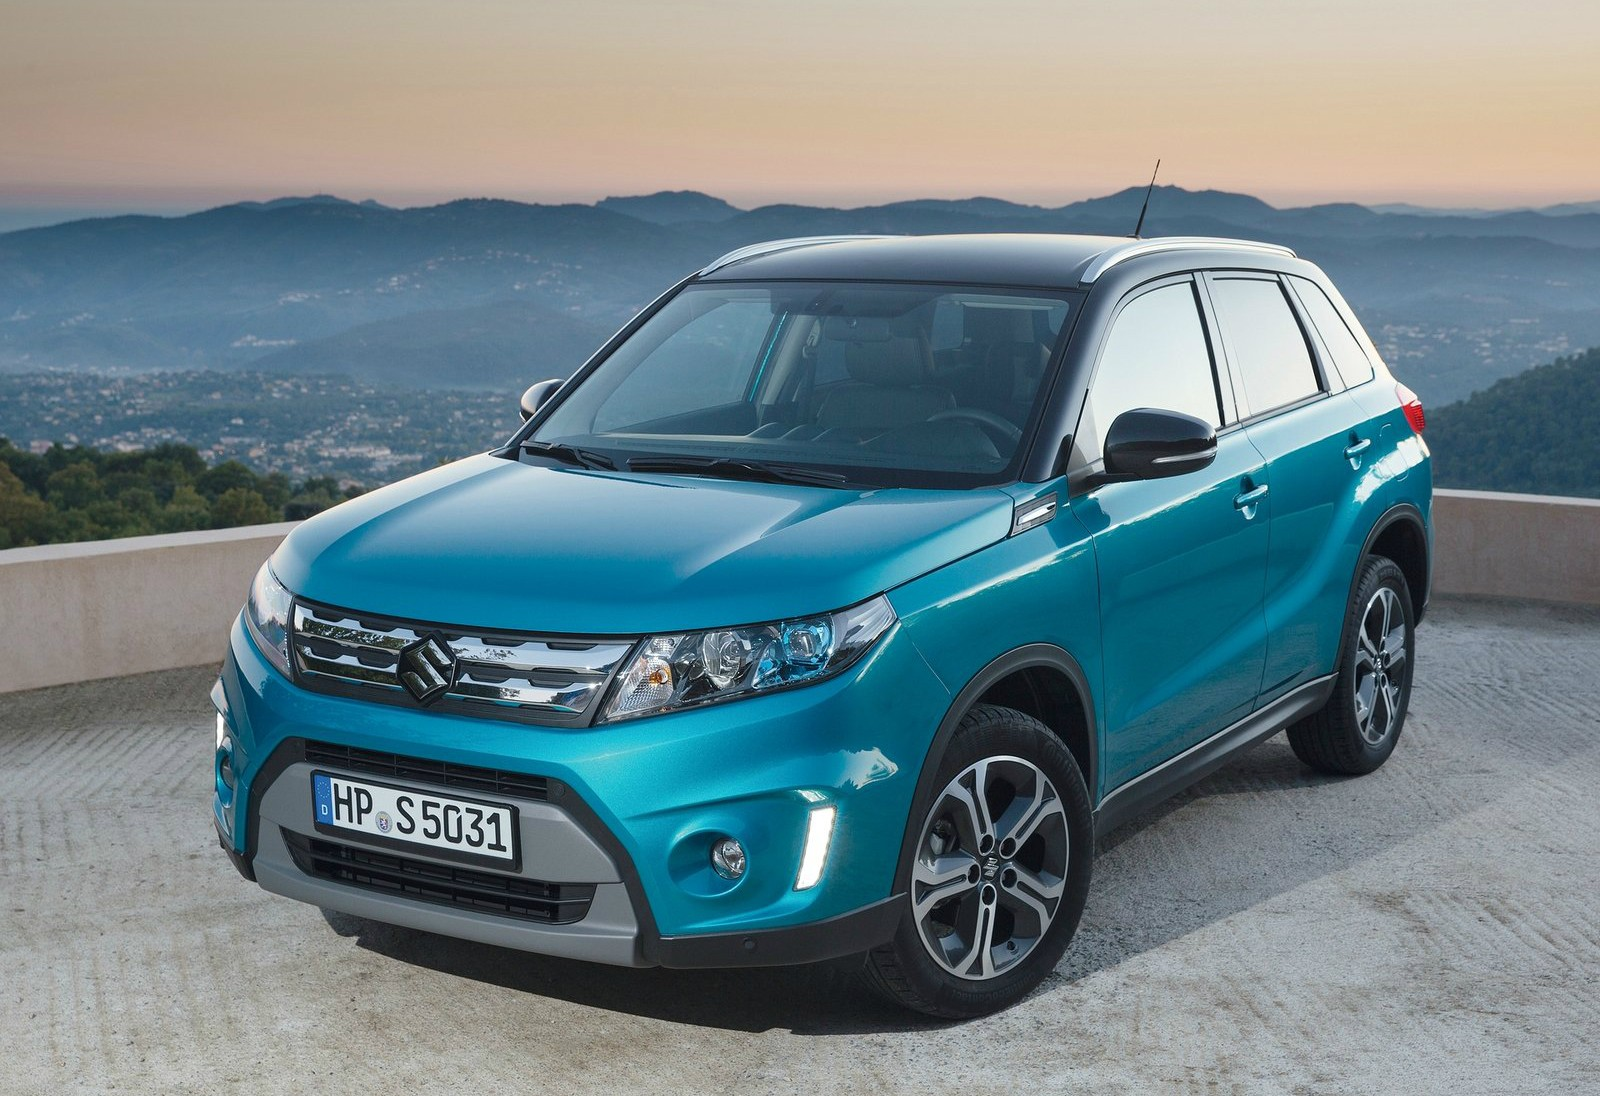 2015 suzuki vitara hailed as the cleanest non hybrid 4x4 in the uk autoevolution. Black Bedroom Furniture Sets. Home Design Ideas